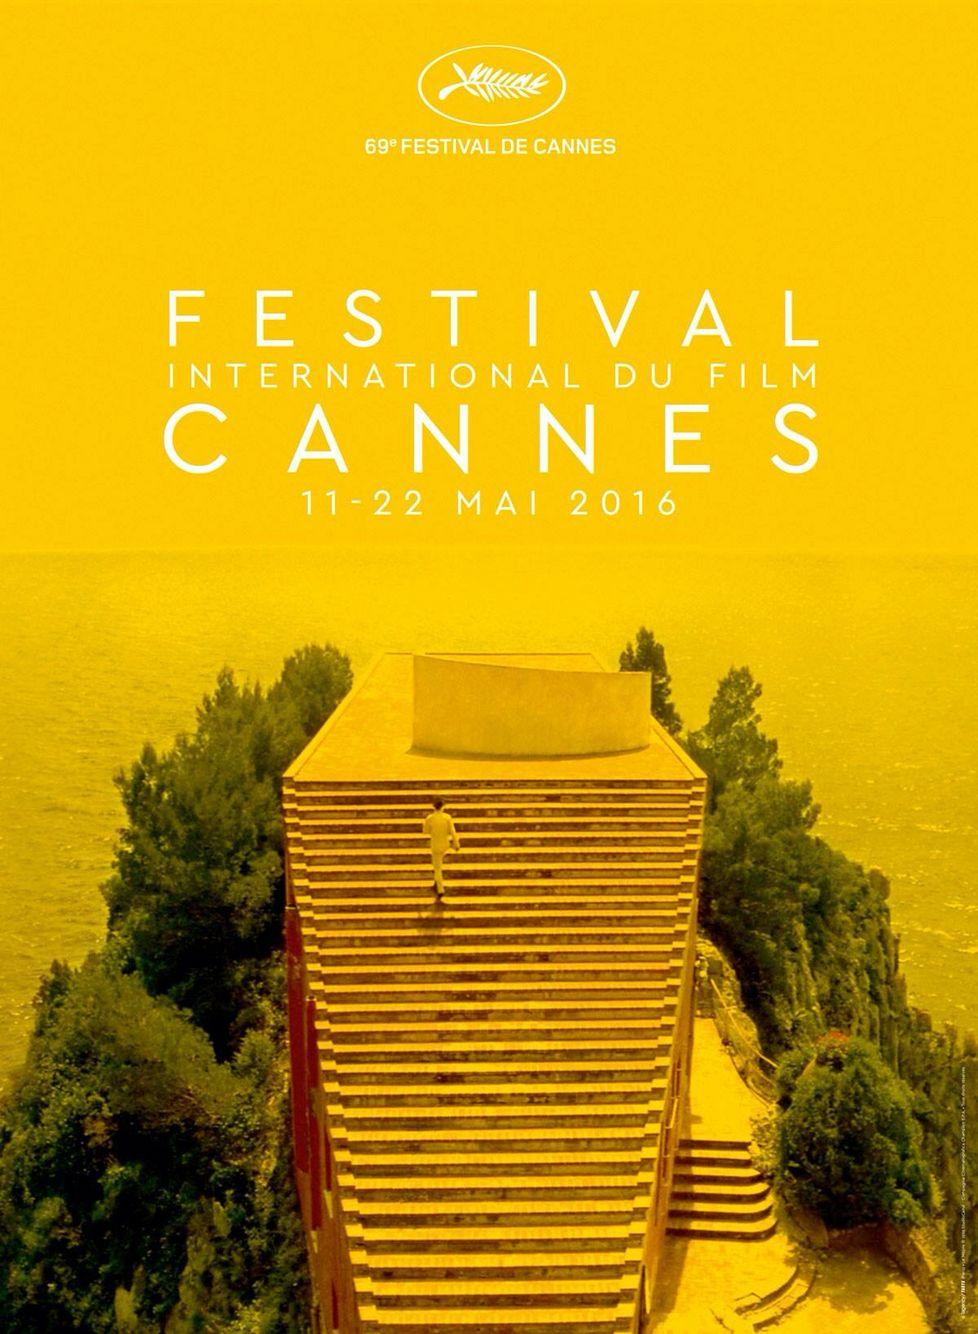 J'adore Cannes